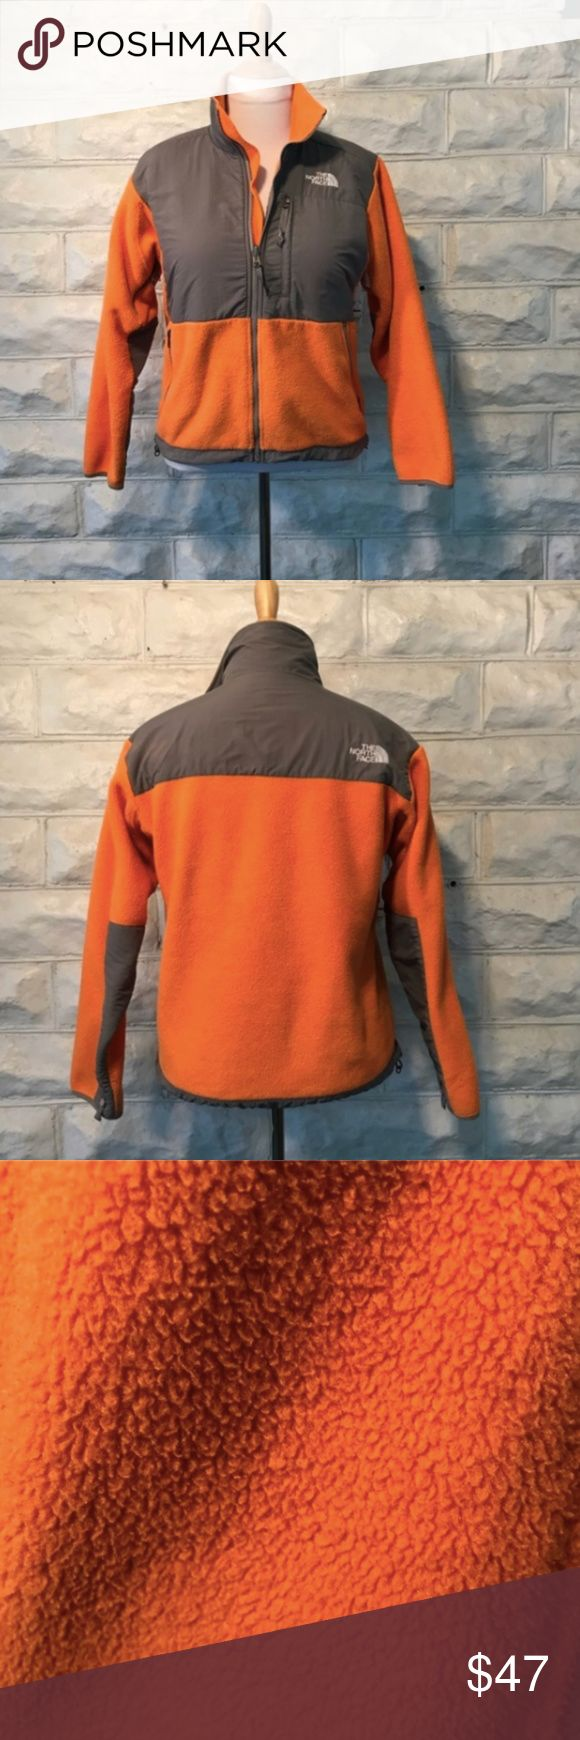 North Face: Orange and Gray Women's Denali Jacket GUC.TONS of love yet to give. Beautiful Denali Seville Orange/Asphalt Grey Jacket. Has zippers under the armpit that can be zipped open or closed to help with the changing of our body temperature. Normal wear and tear with fleece. Pictures show wear. Small snags/hole near breast pocket zipper (see photo). TONS of love yet to give. PERFECT for the fall and winter! Use ZOOM to see details. Please ask questions prior to purchase. Retails $175…